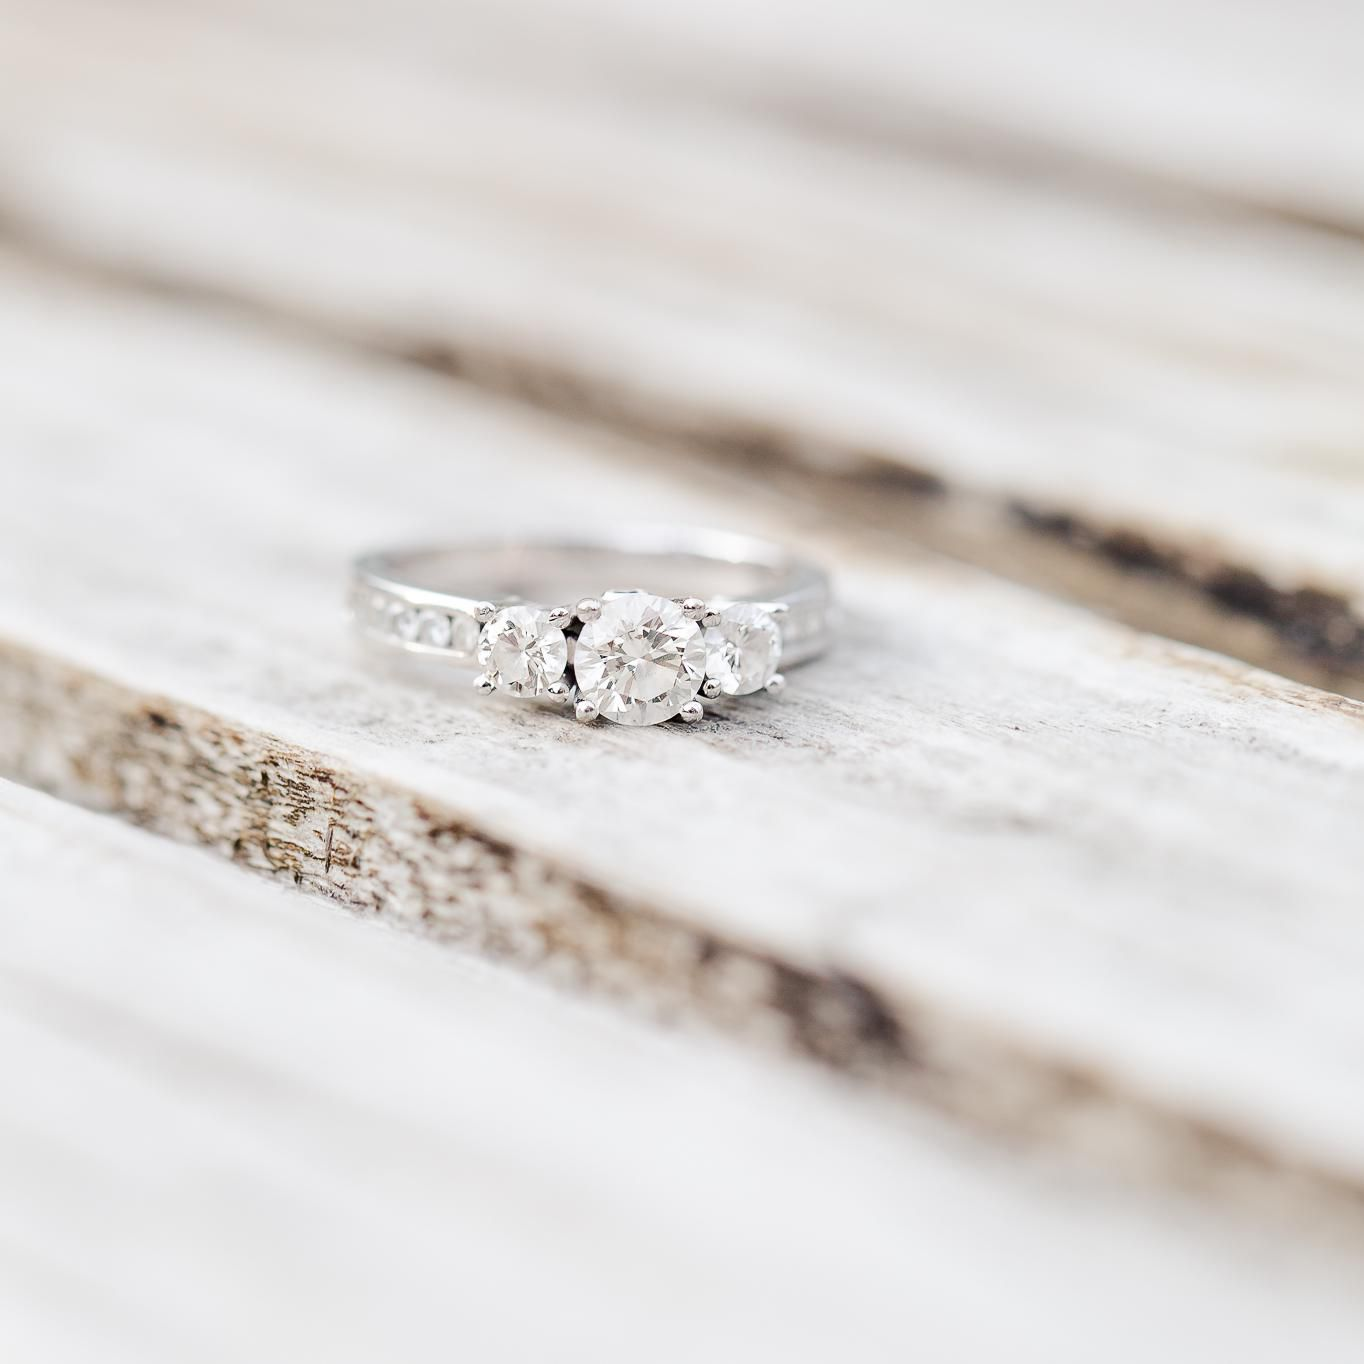 How To Clean Your Diamond Engagement Ring